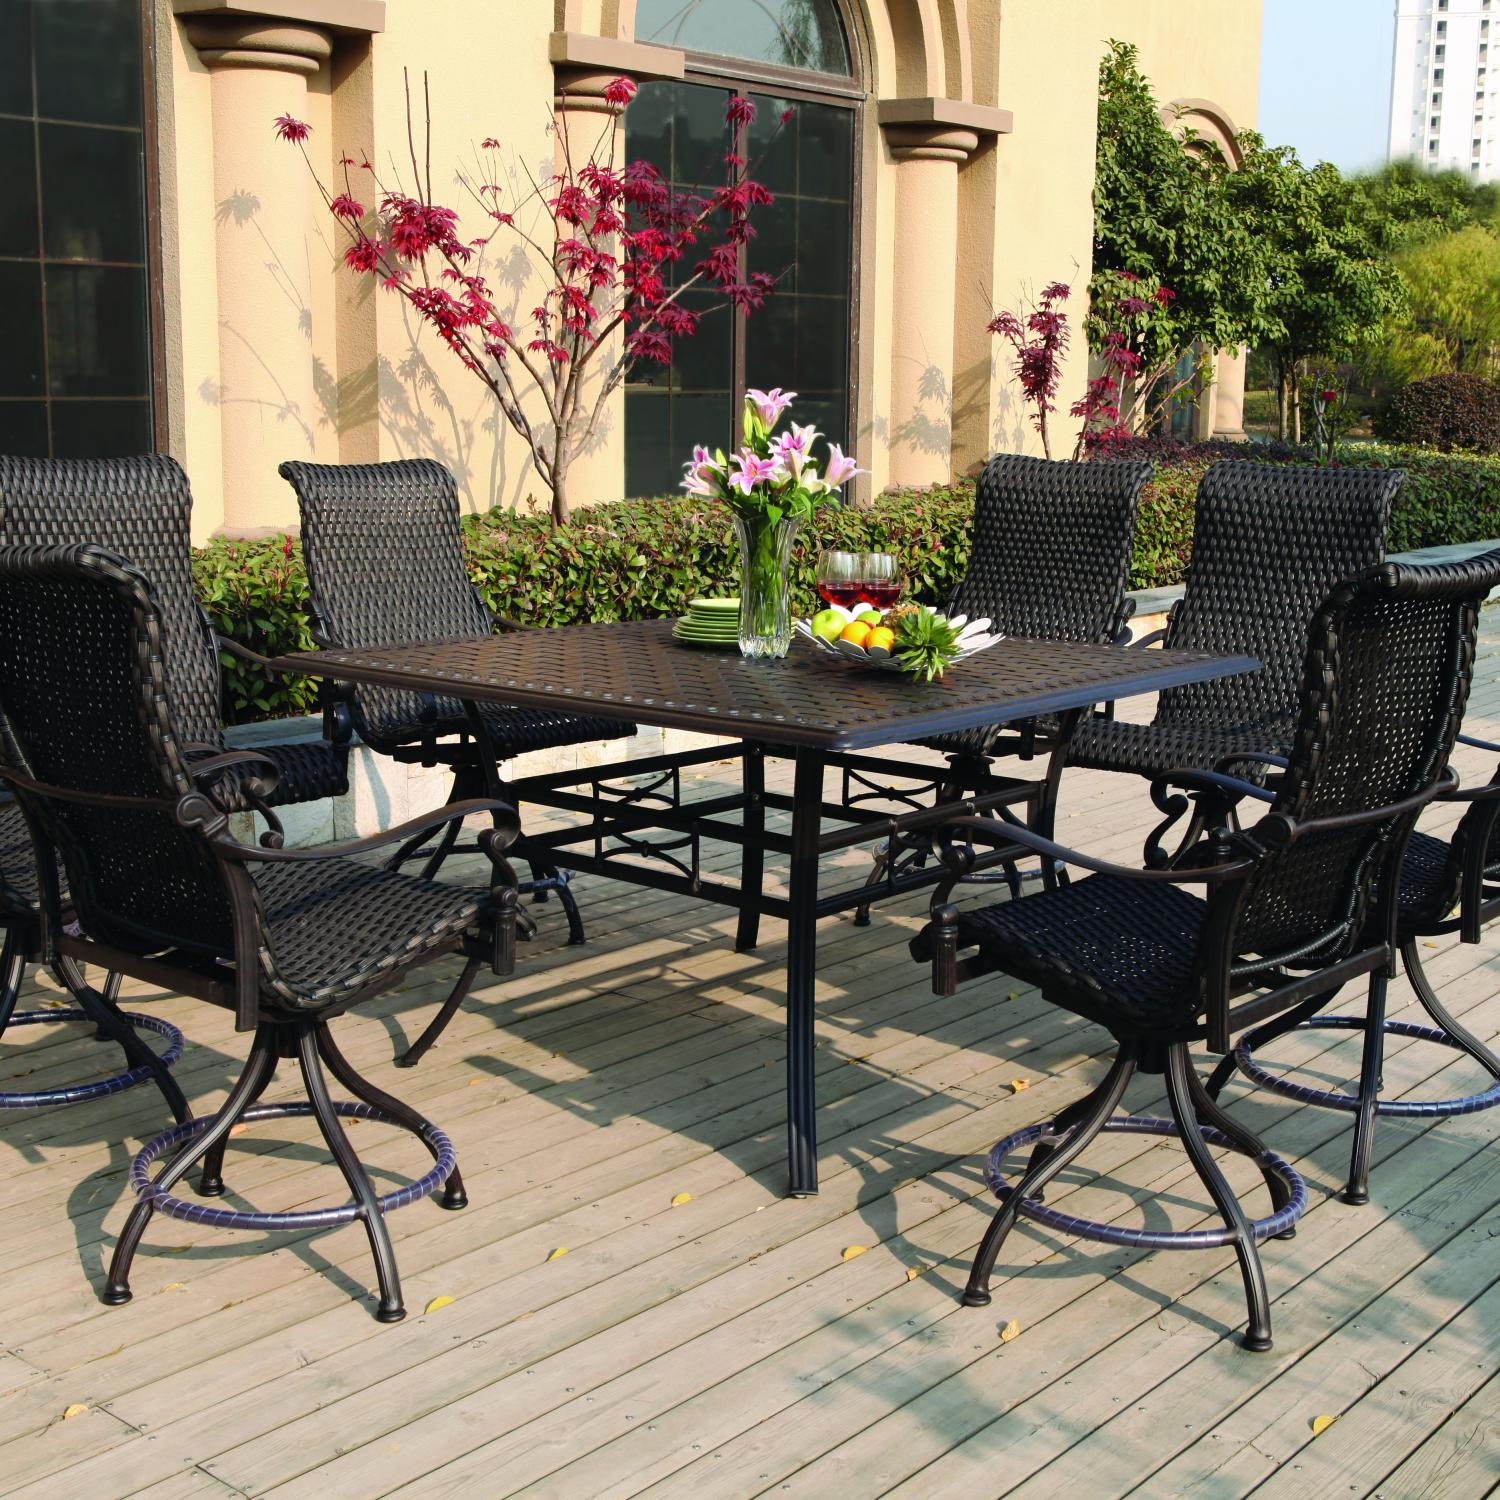 Lowes Bistro Set | Bar Height Patio Sets | Outdoor Coffee Table with Umbrella Hole